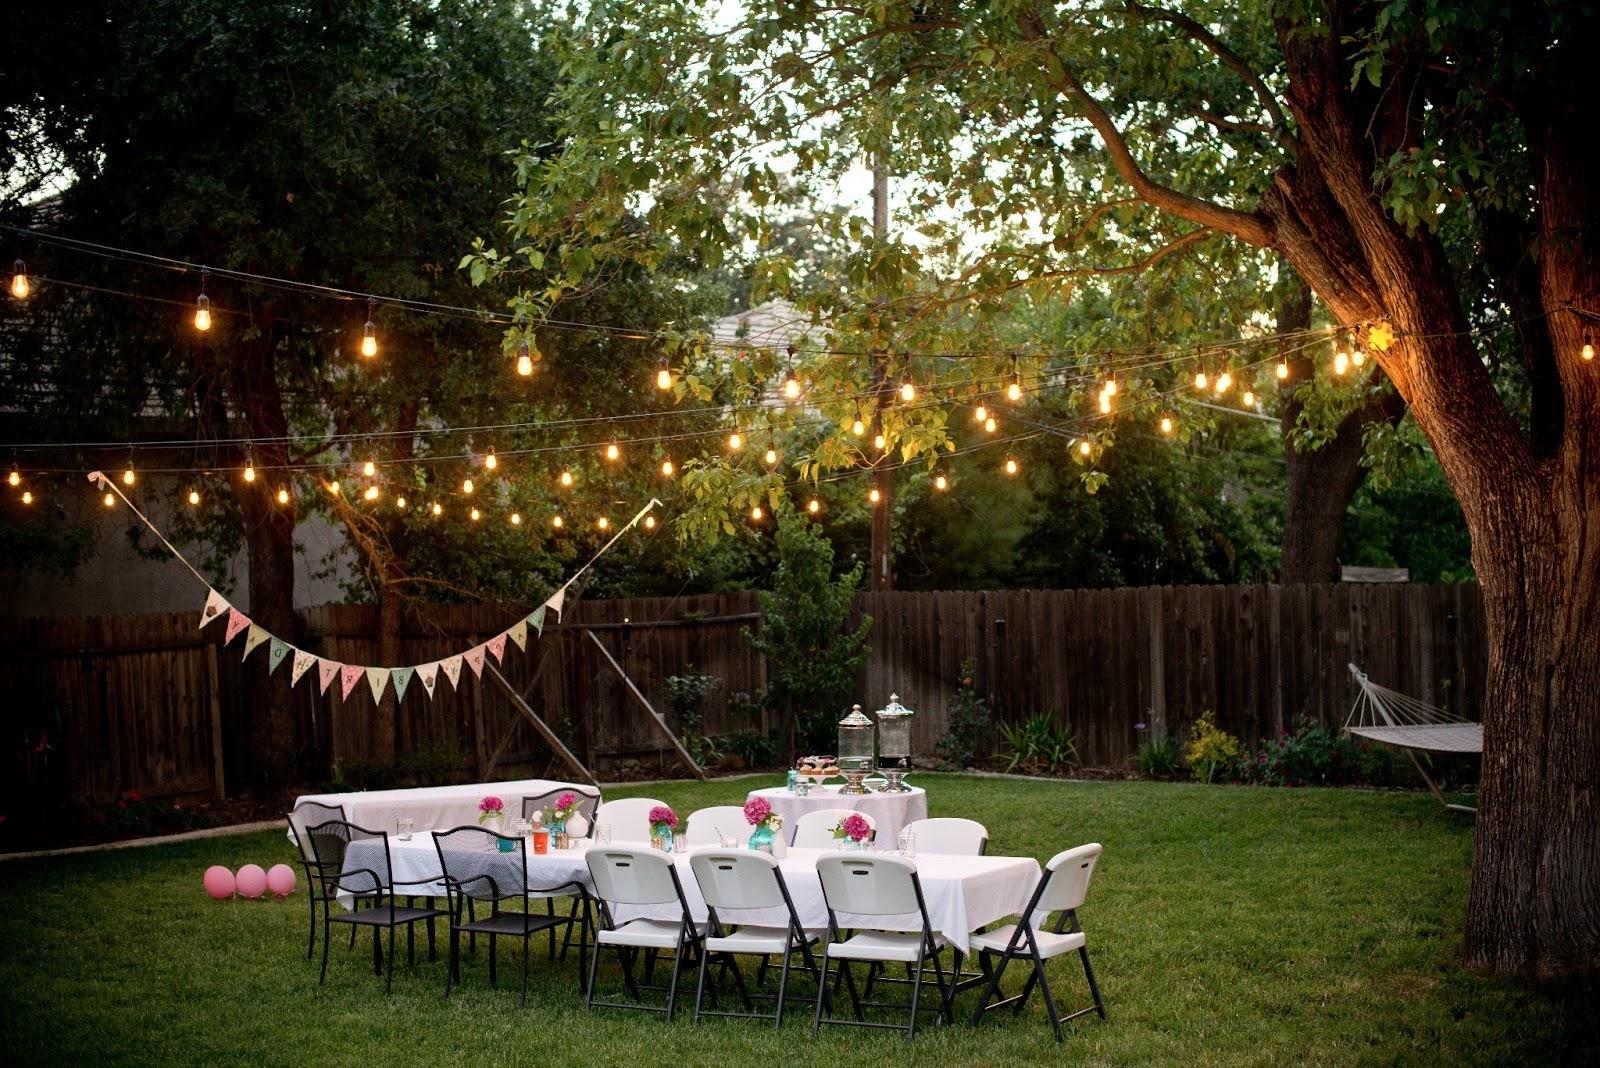 2018 Outdoor Lanterns For Parties In Cheap Outdoor Lights String Net Party Lighting Ideas For Weddings (Gallery 8 of 20)